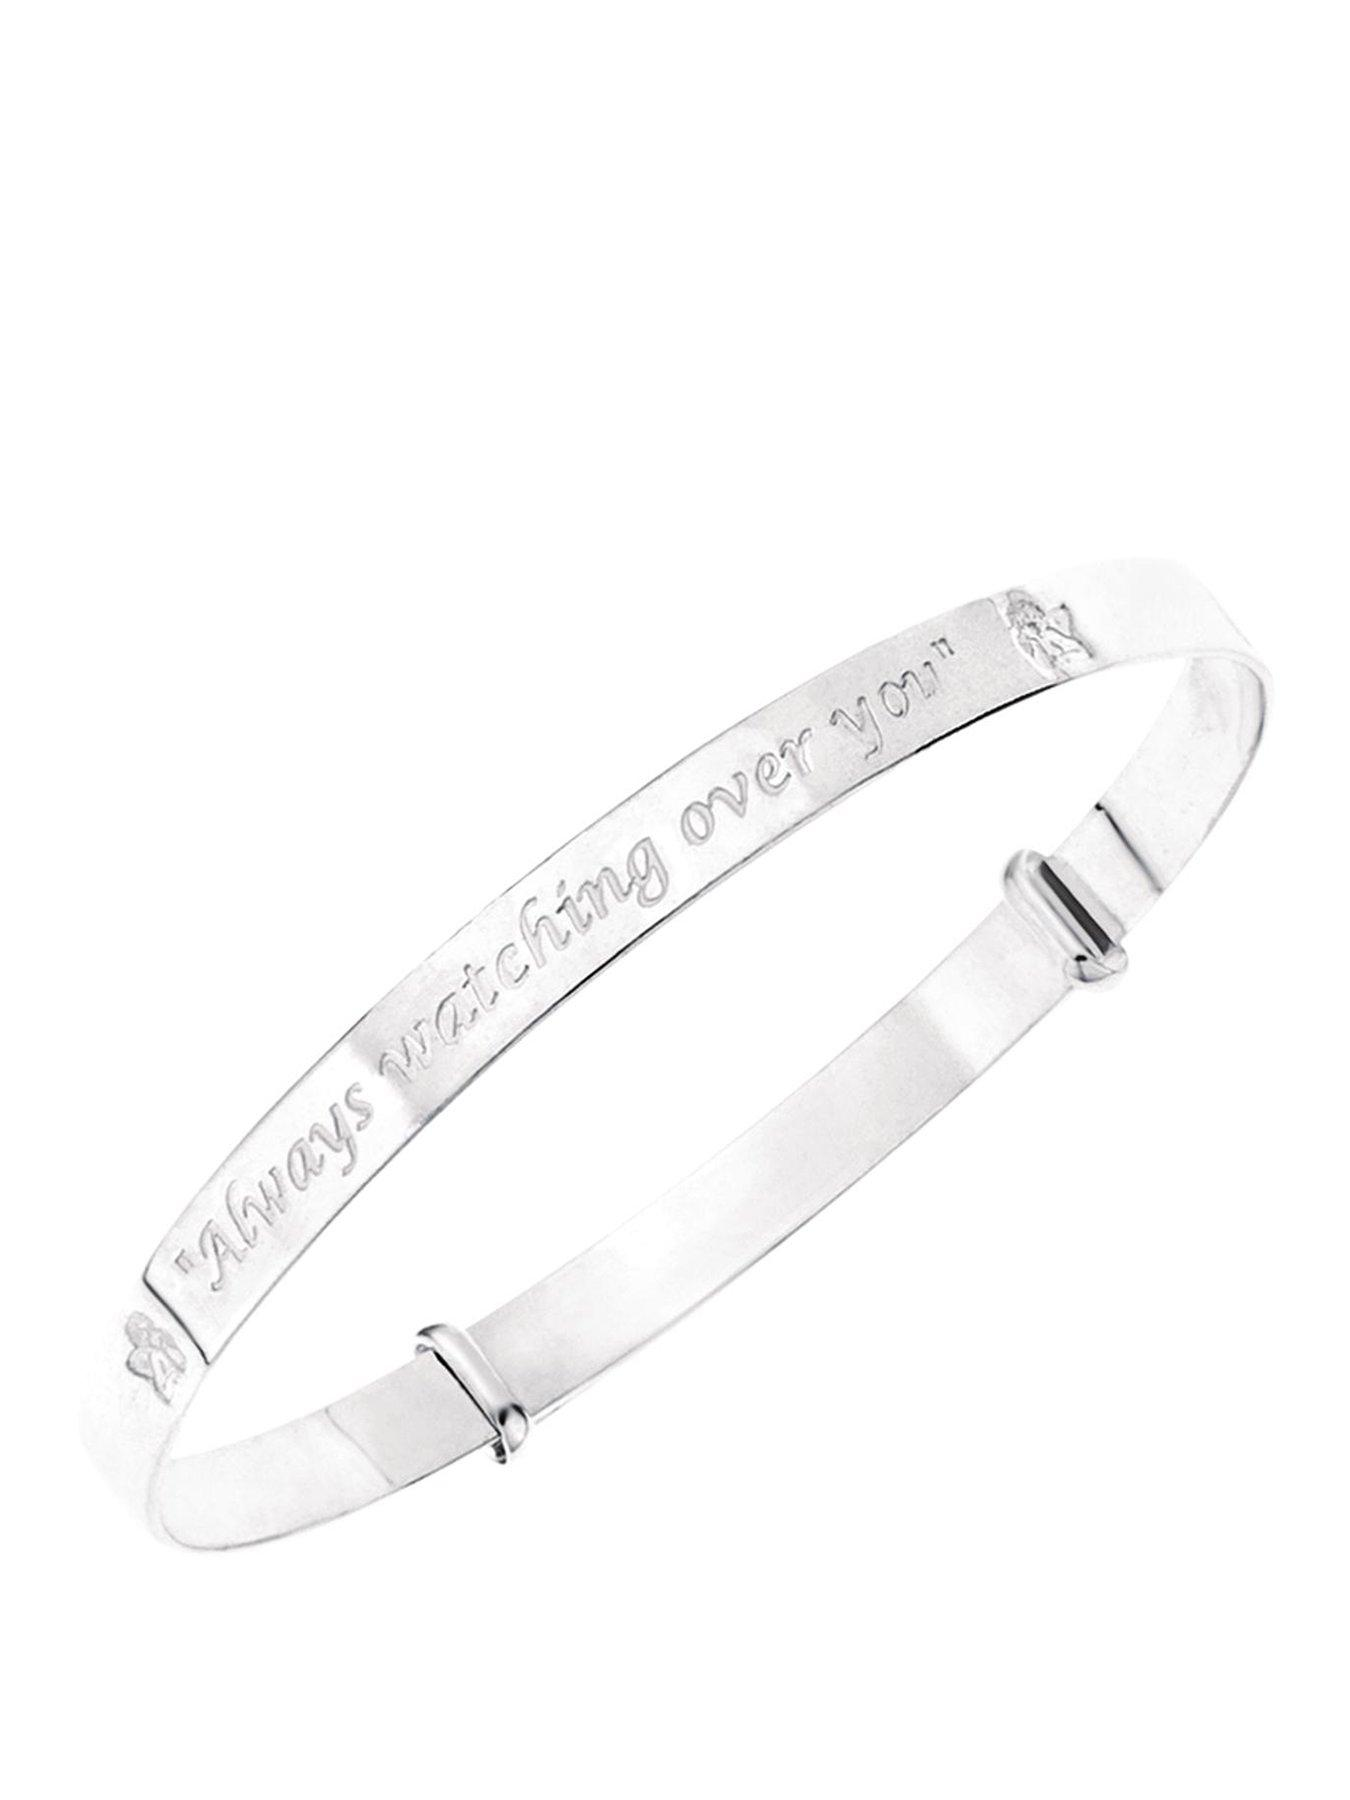 latest special offers discounts deals littlewoods ireland 1965 Plymouth Barracuda the love silver collection sterling silver guardian angel bangle with message always watching over you